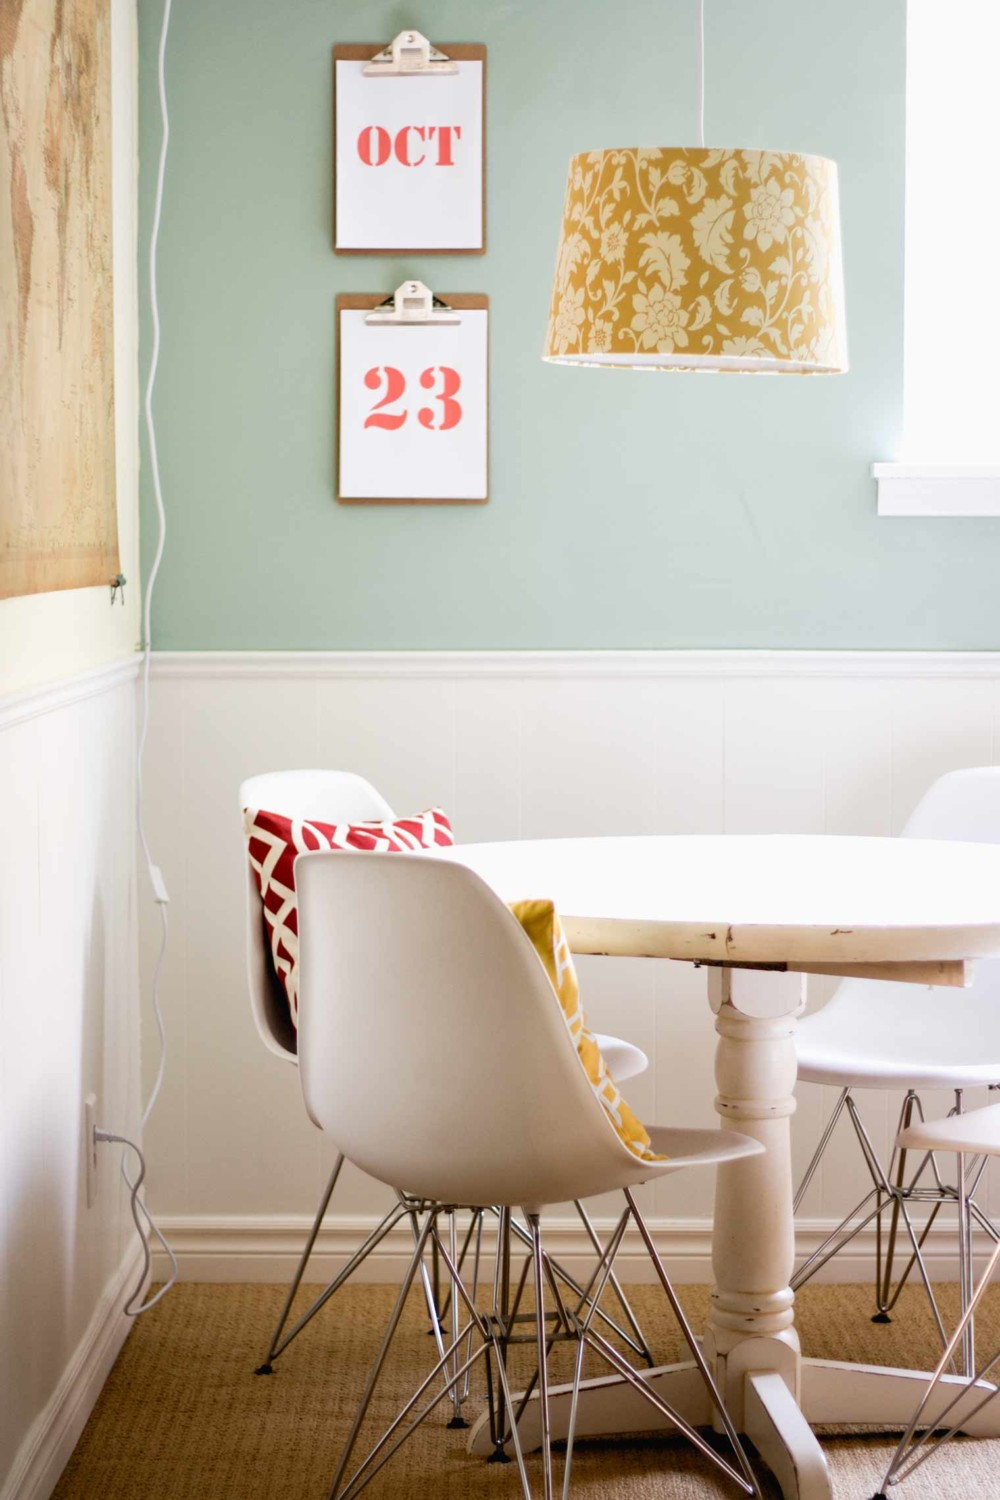 white pedestal table, white eames chairs, hanging pendant light in yellow and clipboard perpetual calendar